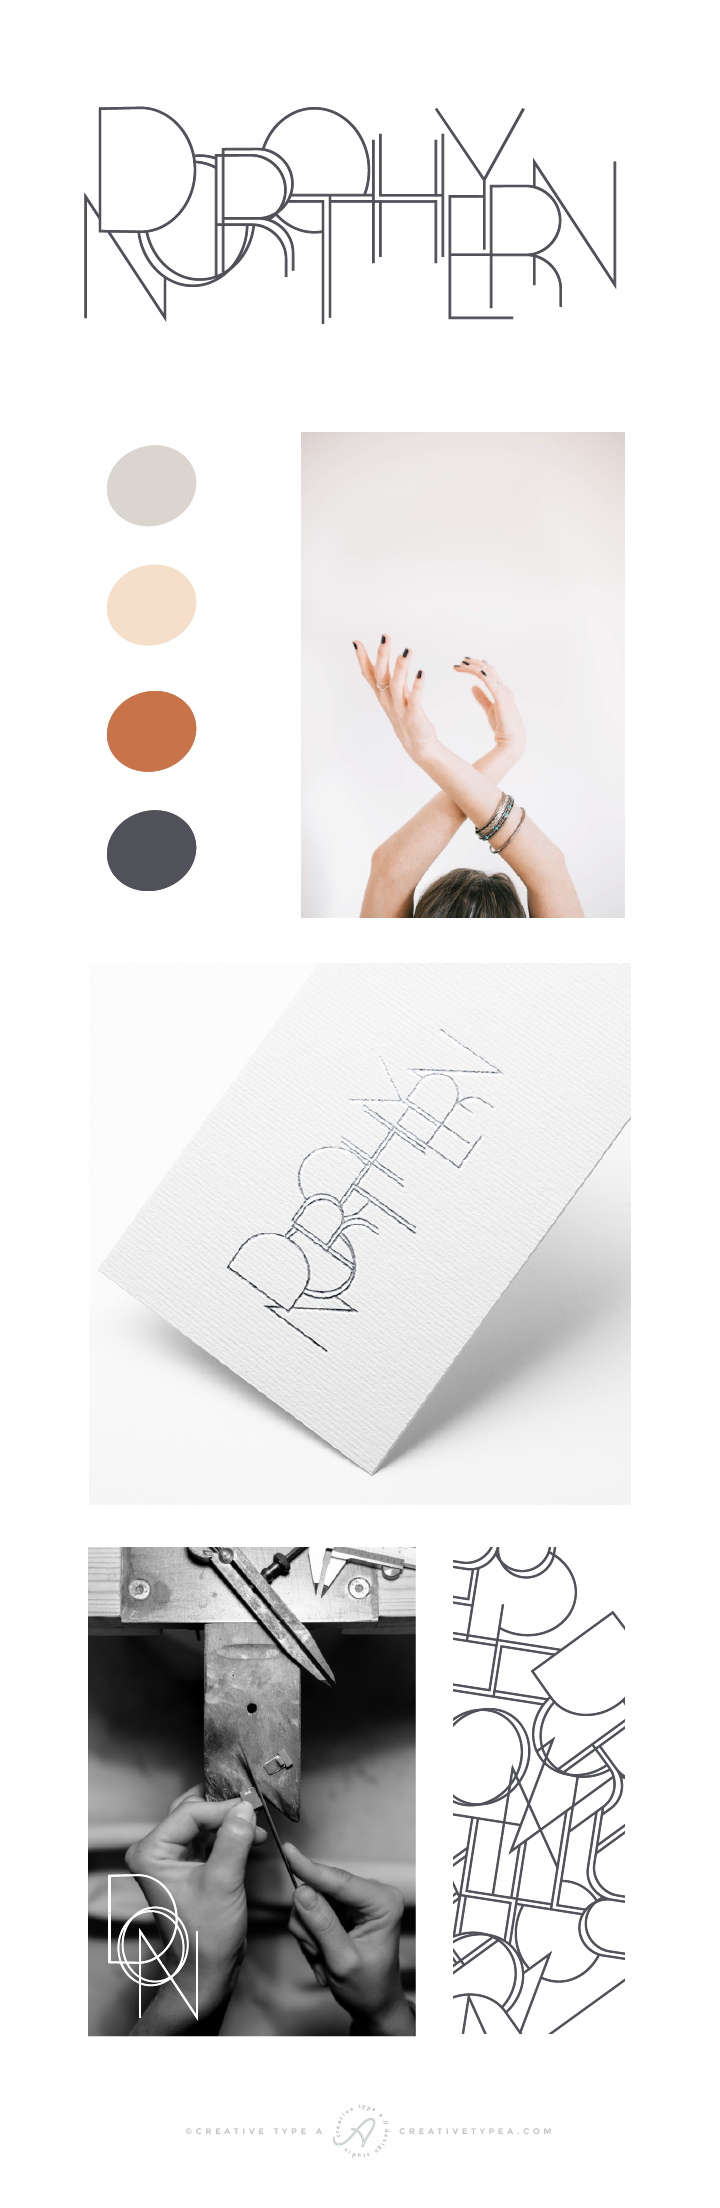 Dorothy Northern Branding Board | Logo + Branding Design by Creative Type A